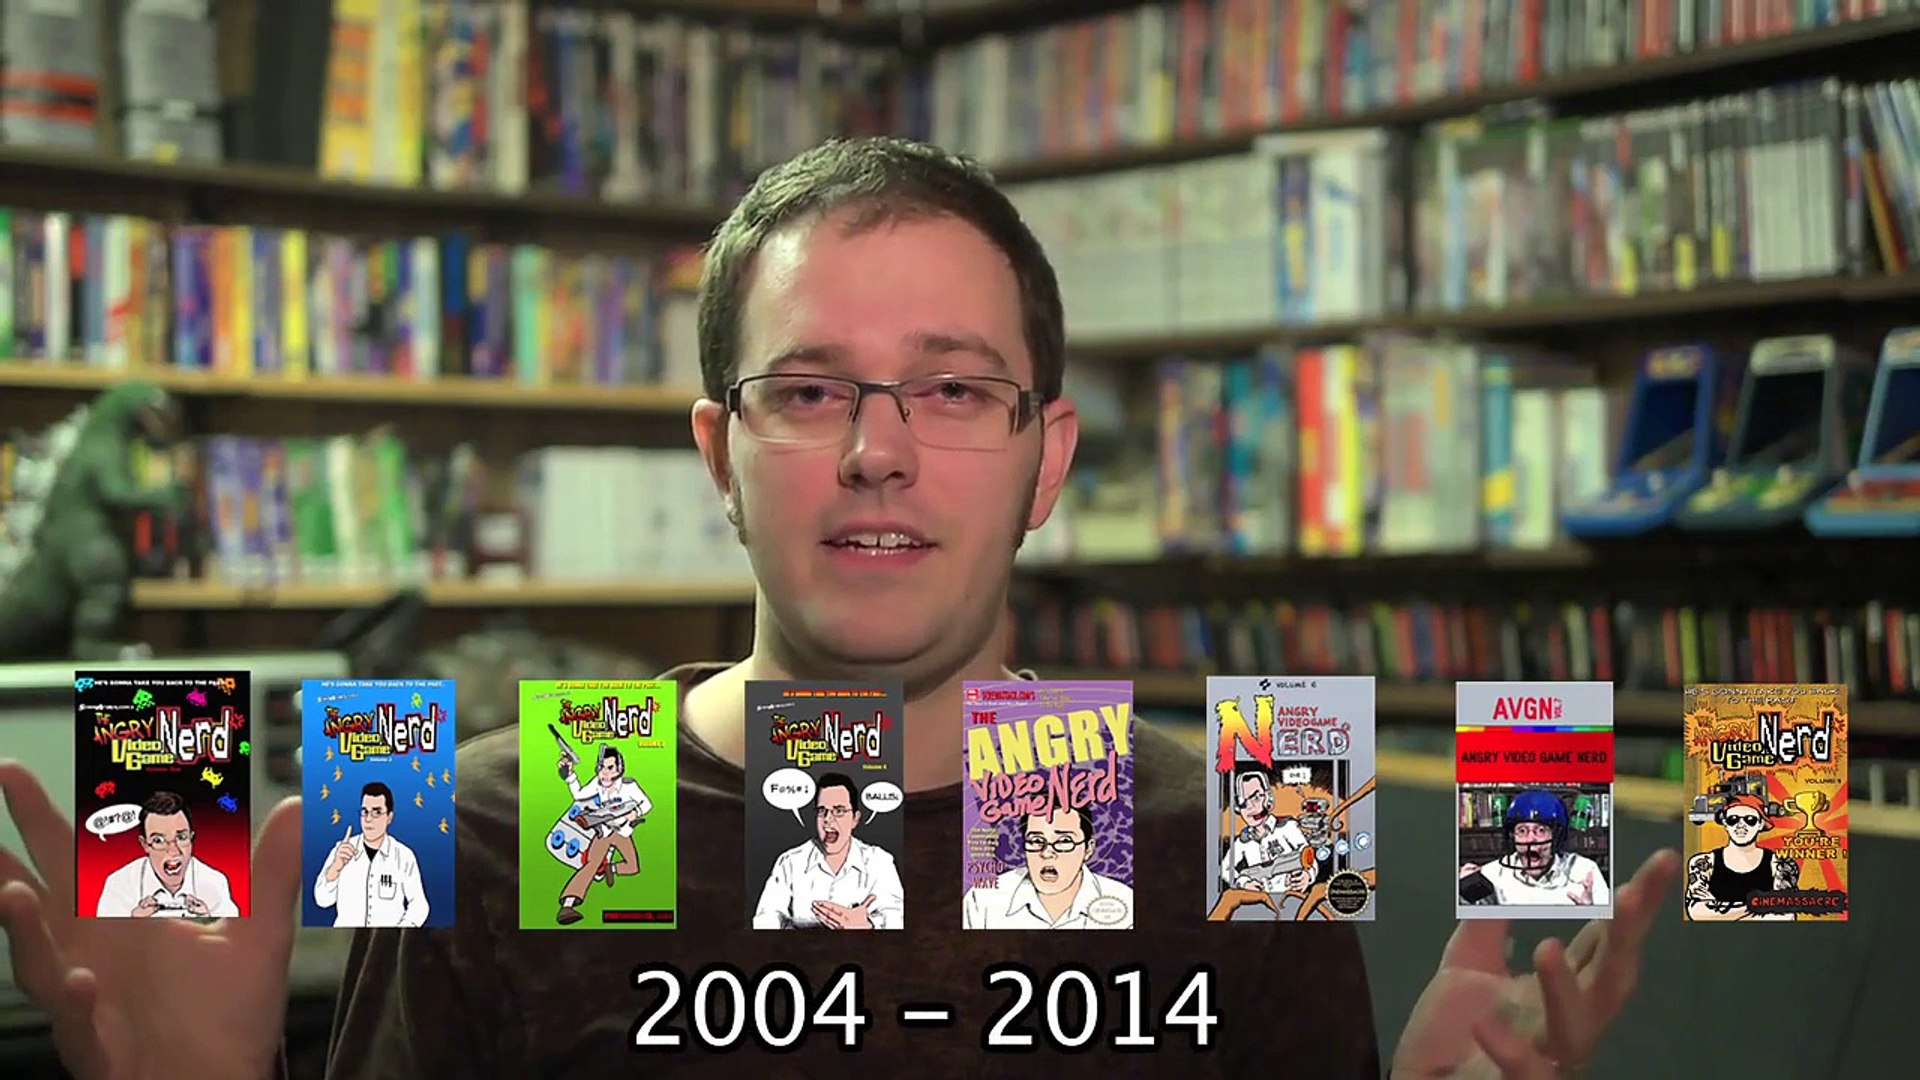 Angry Video Game Nerd Volume 8 Dvd Dailymotion Video